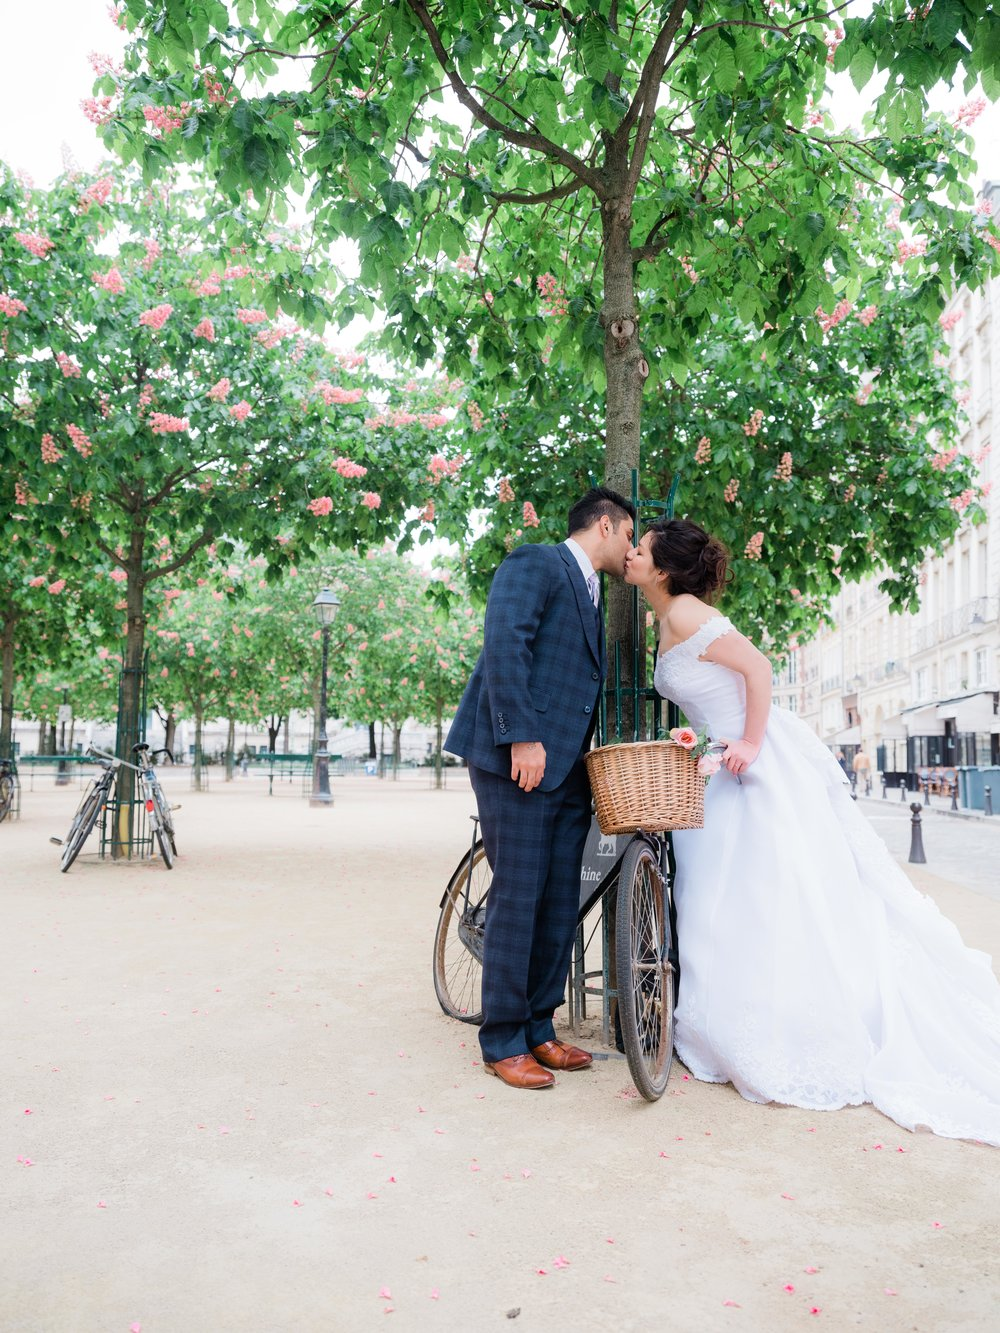 gorgeous wedding photo shoot in paris france in april